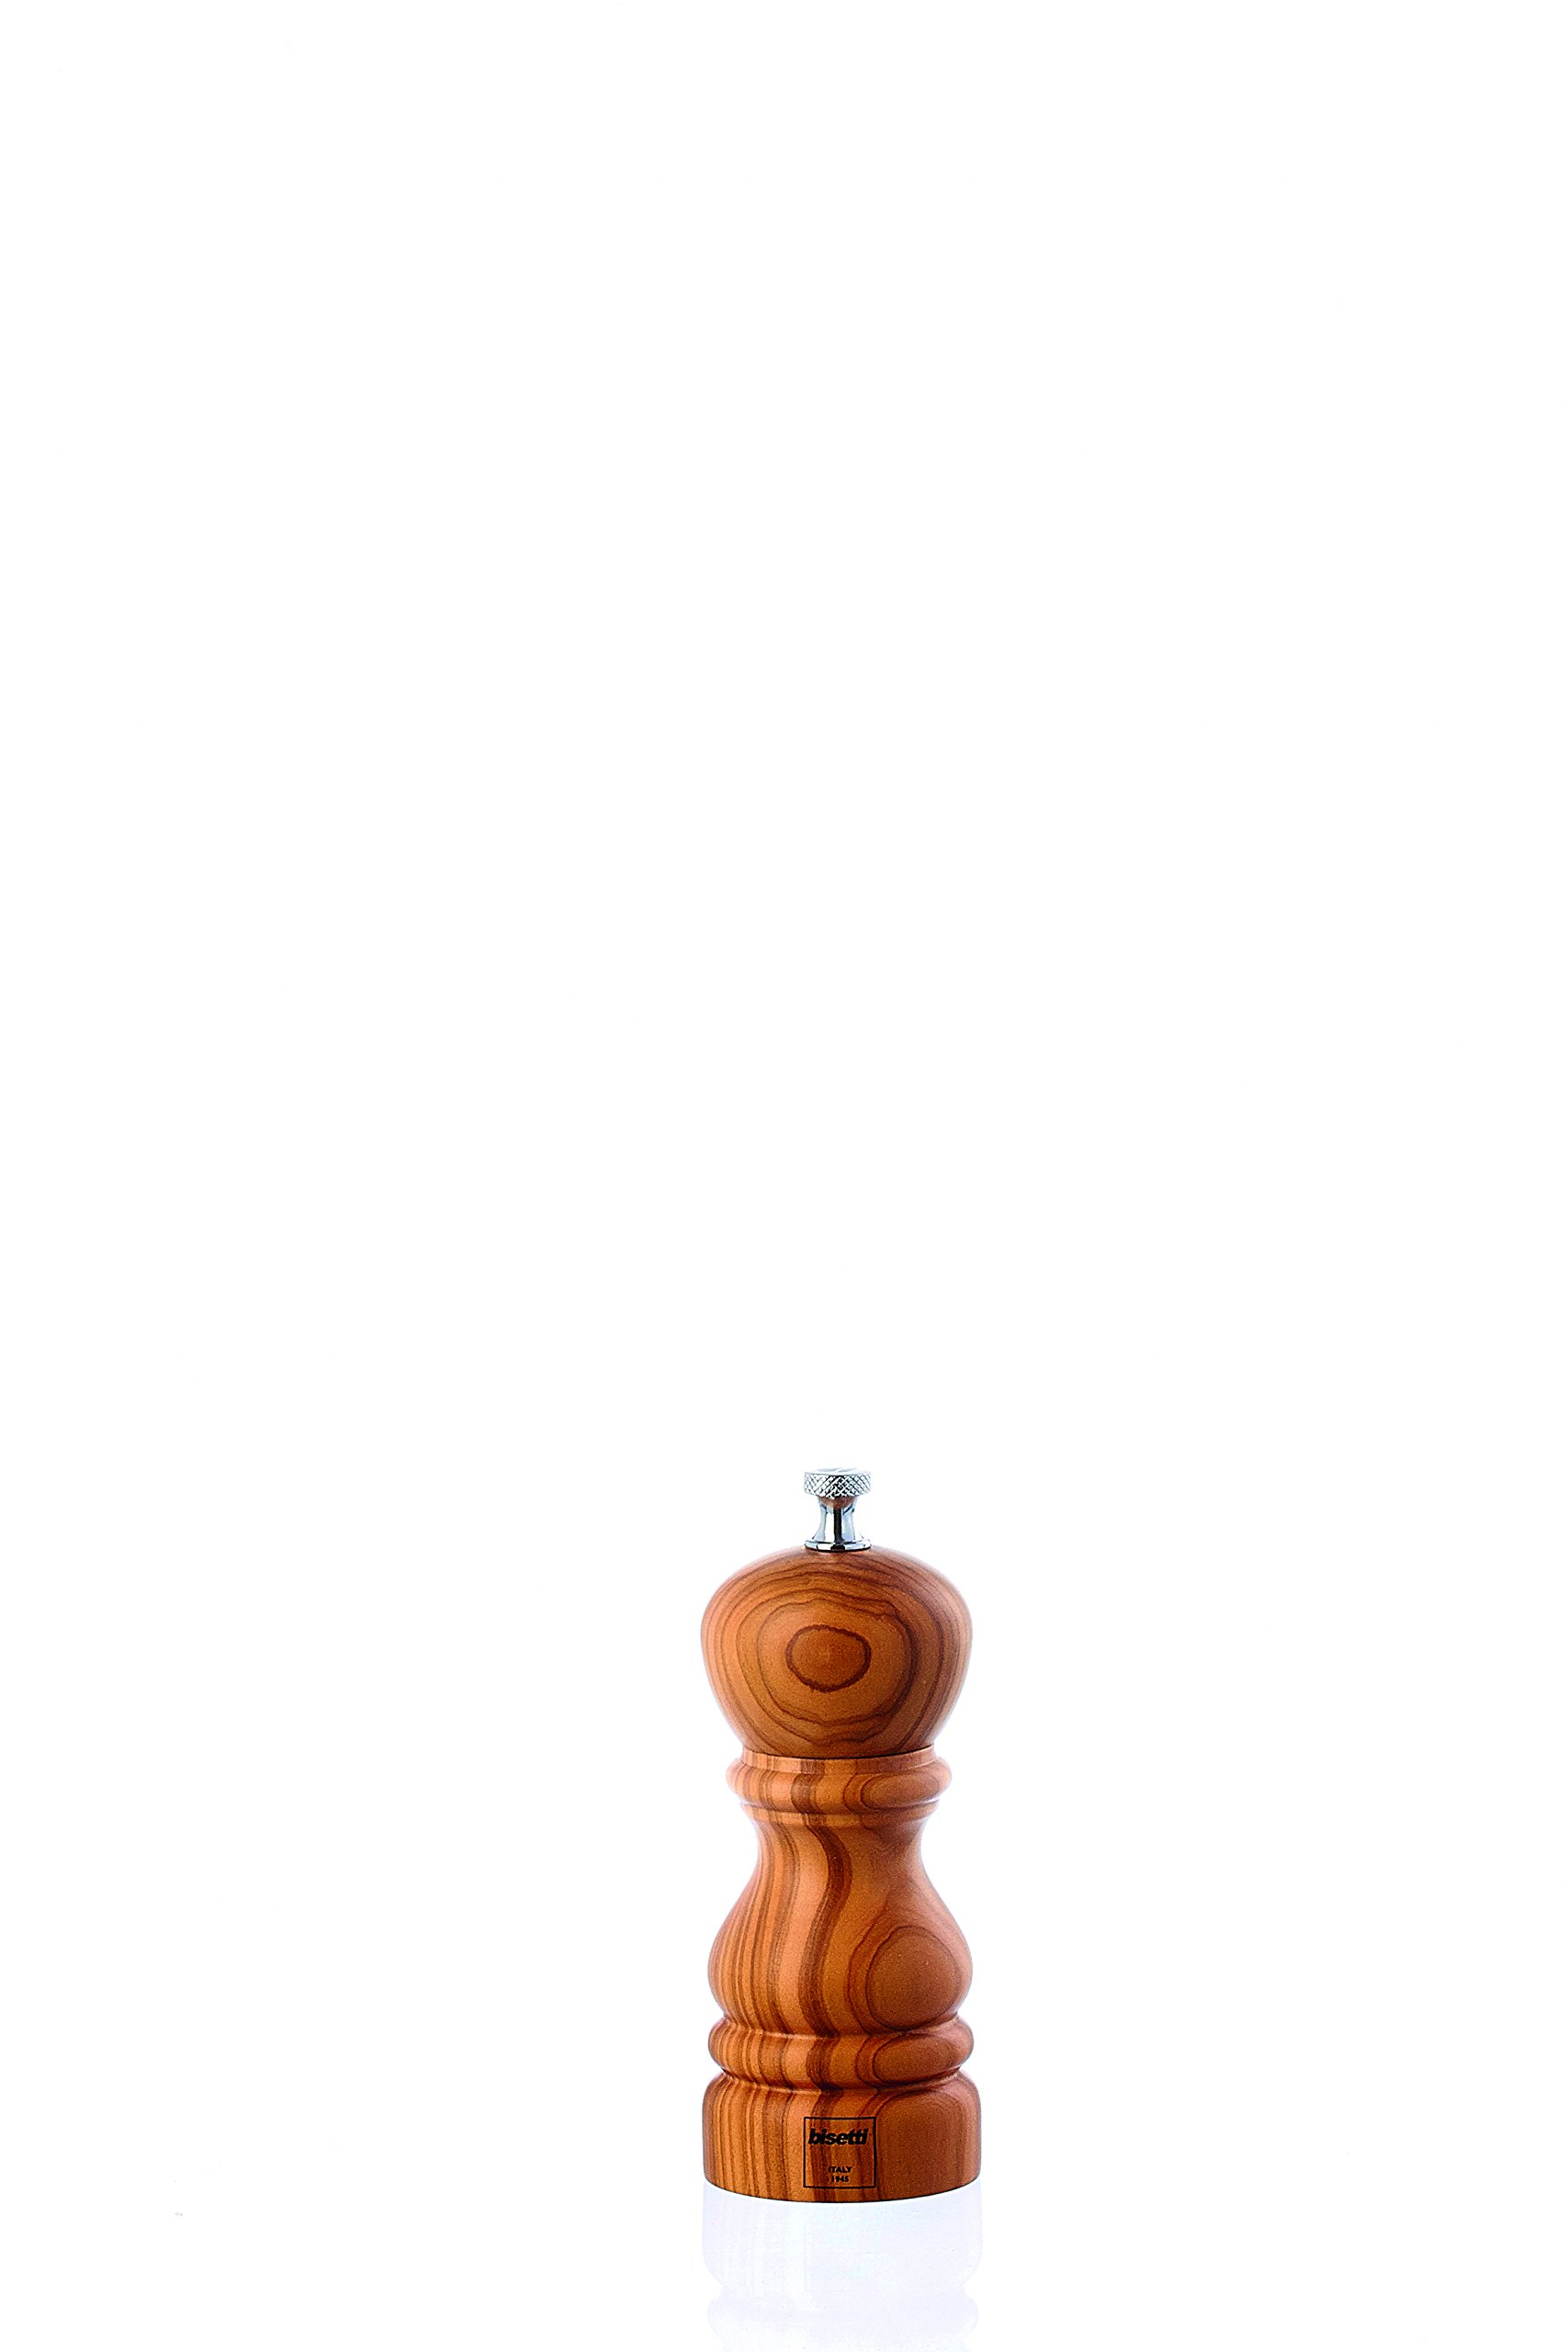 Bisetti BT-6150UMS Imperia Olive Wood Salt Mill, 5.12-Inch, Natural by bisetti